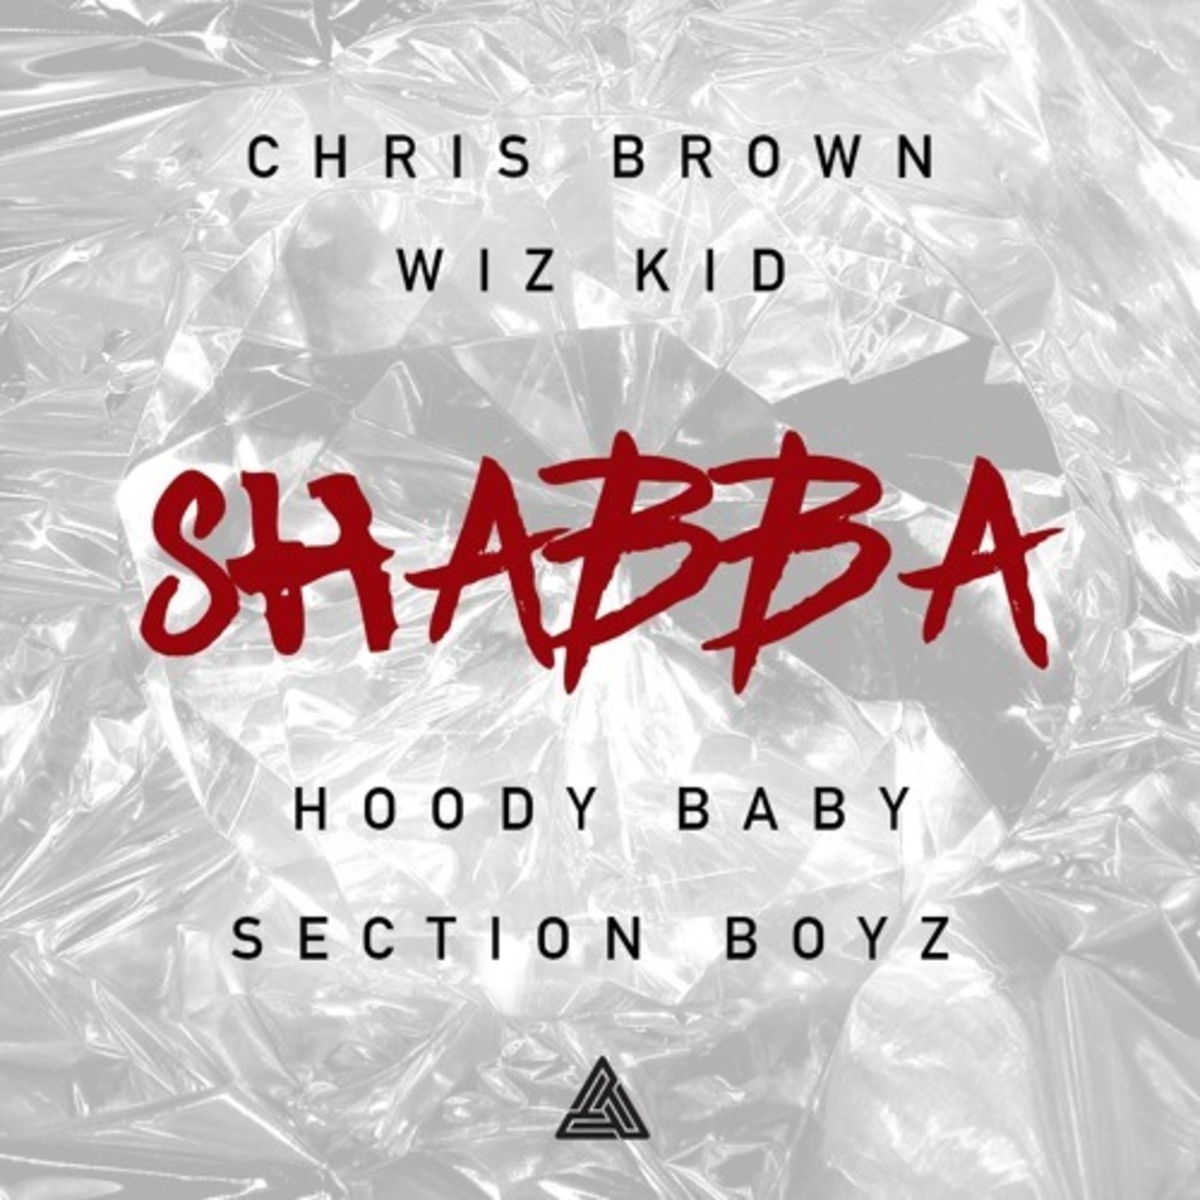 chris-brown-shabba.jpg